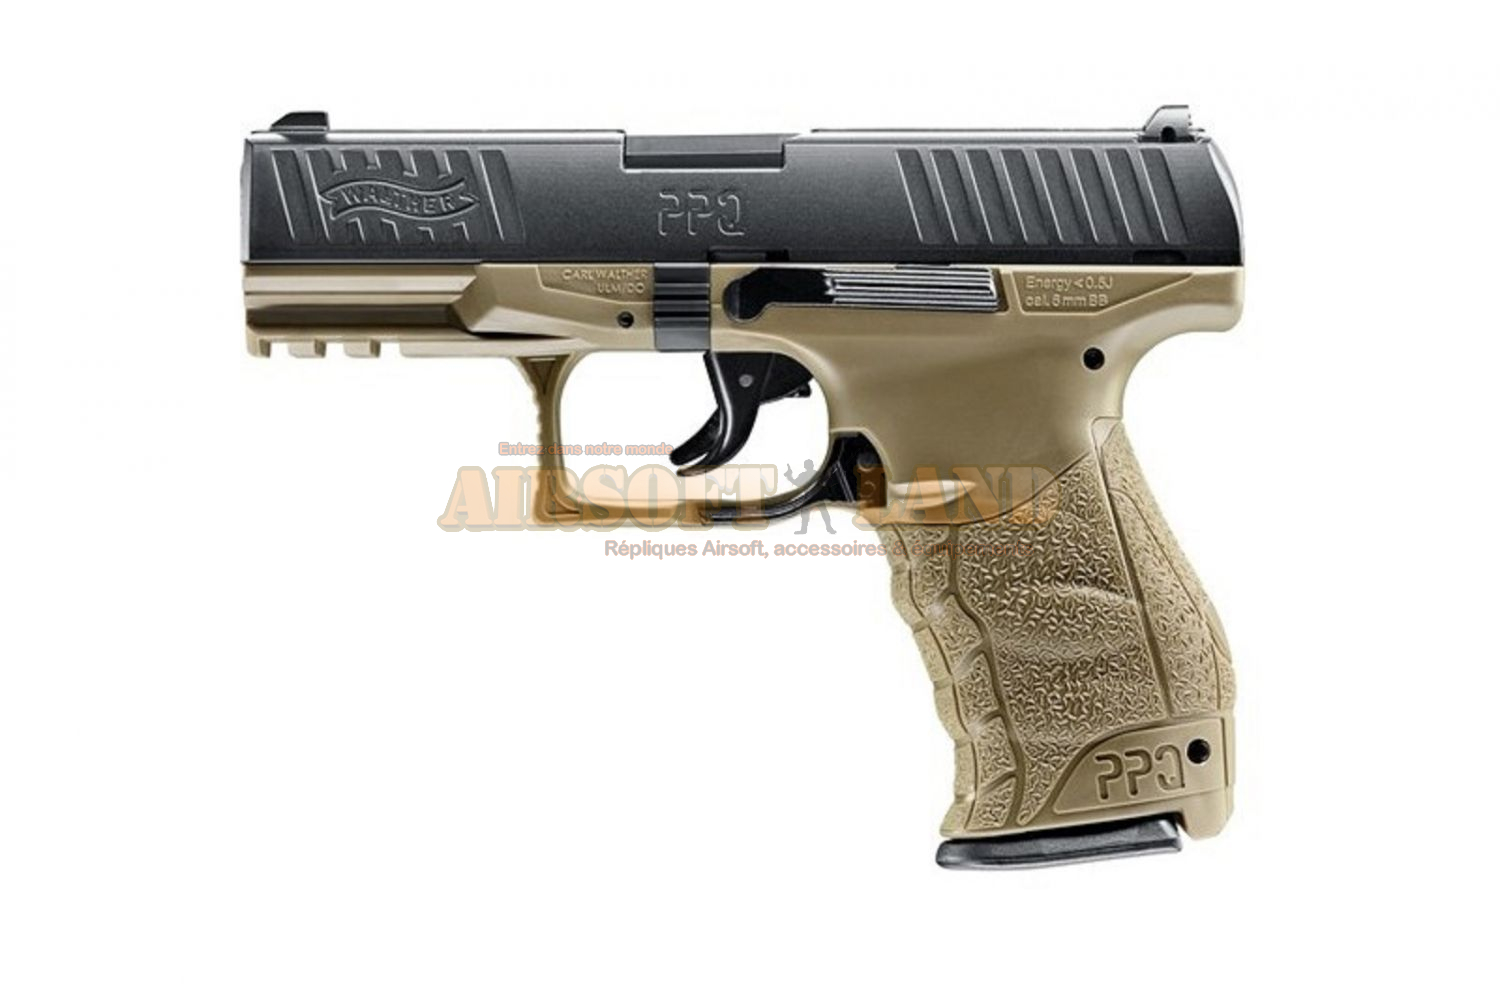 WALTHER PPQ spring RAL 8000